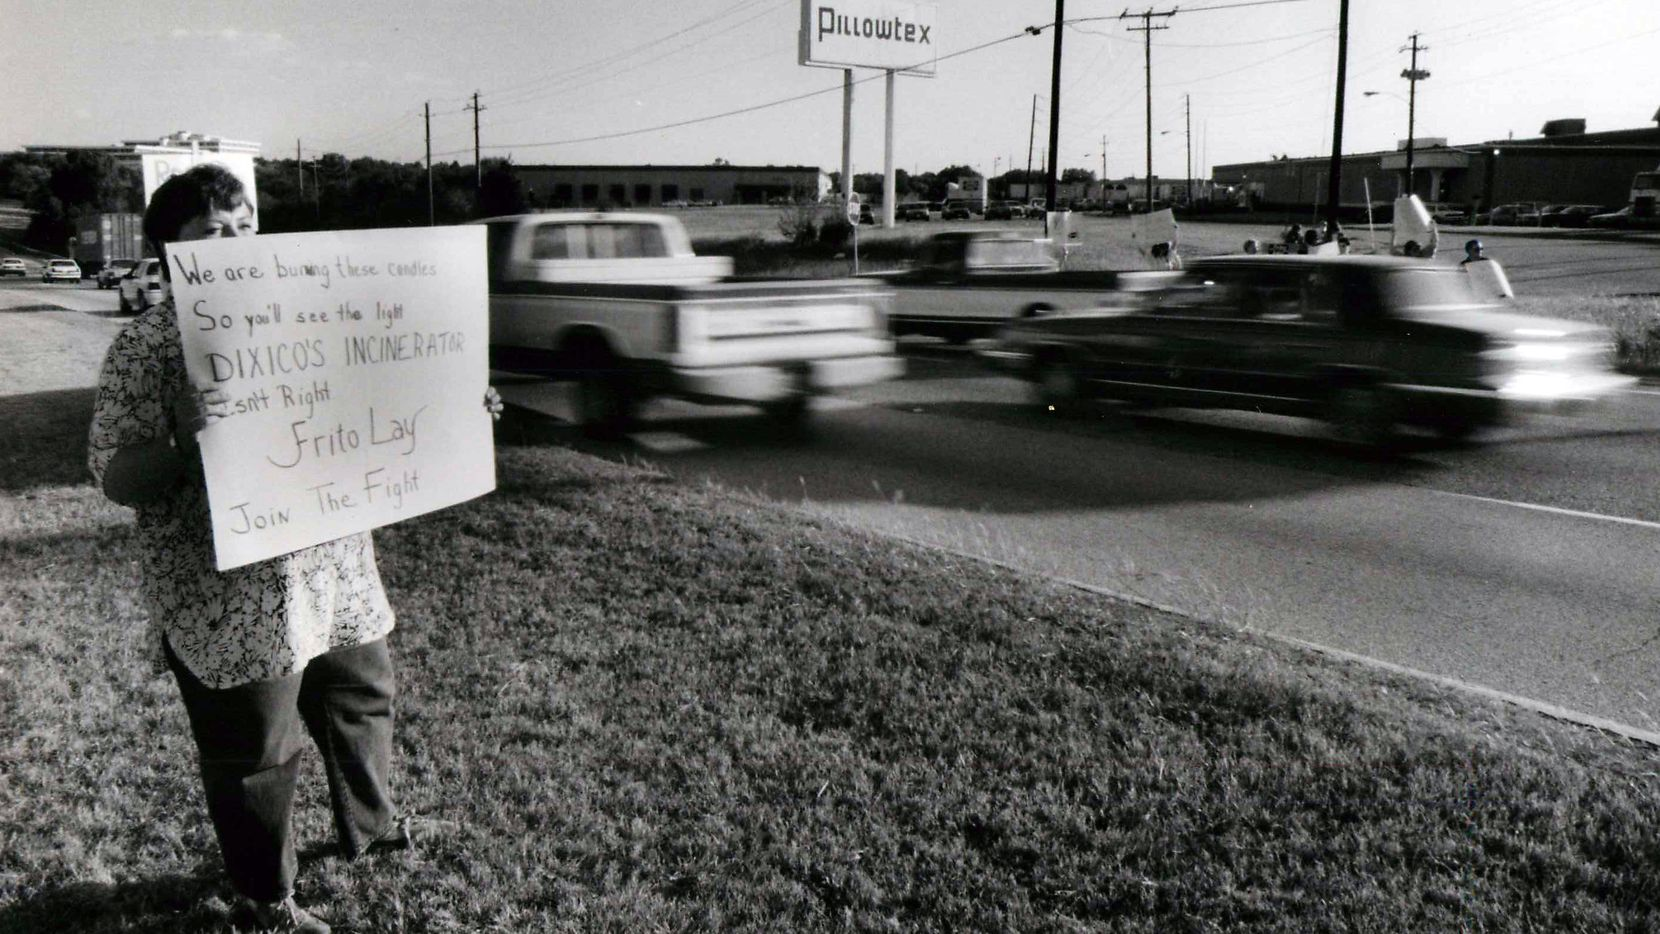 In this 1989 file photo, Roberta Becker pickets a Frito Lay distribution center at Kiest Boulevard and Loop 12. She and about 20 other protesters called for a boycott of Frito Lay as part of a larger action protesting the application for a hazardous waste incinerator permit by Dixico Inc., a Frito Lay packaging manufacturer.